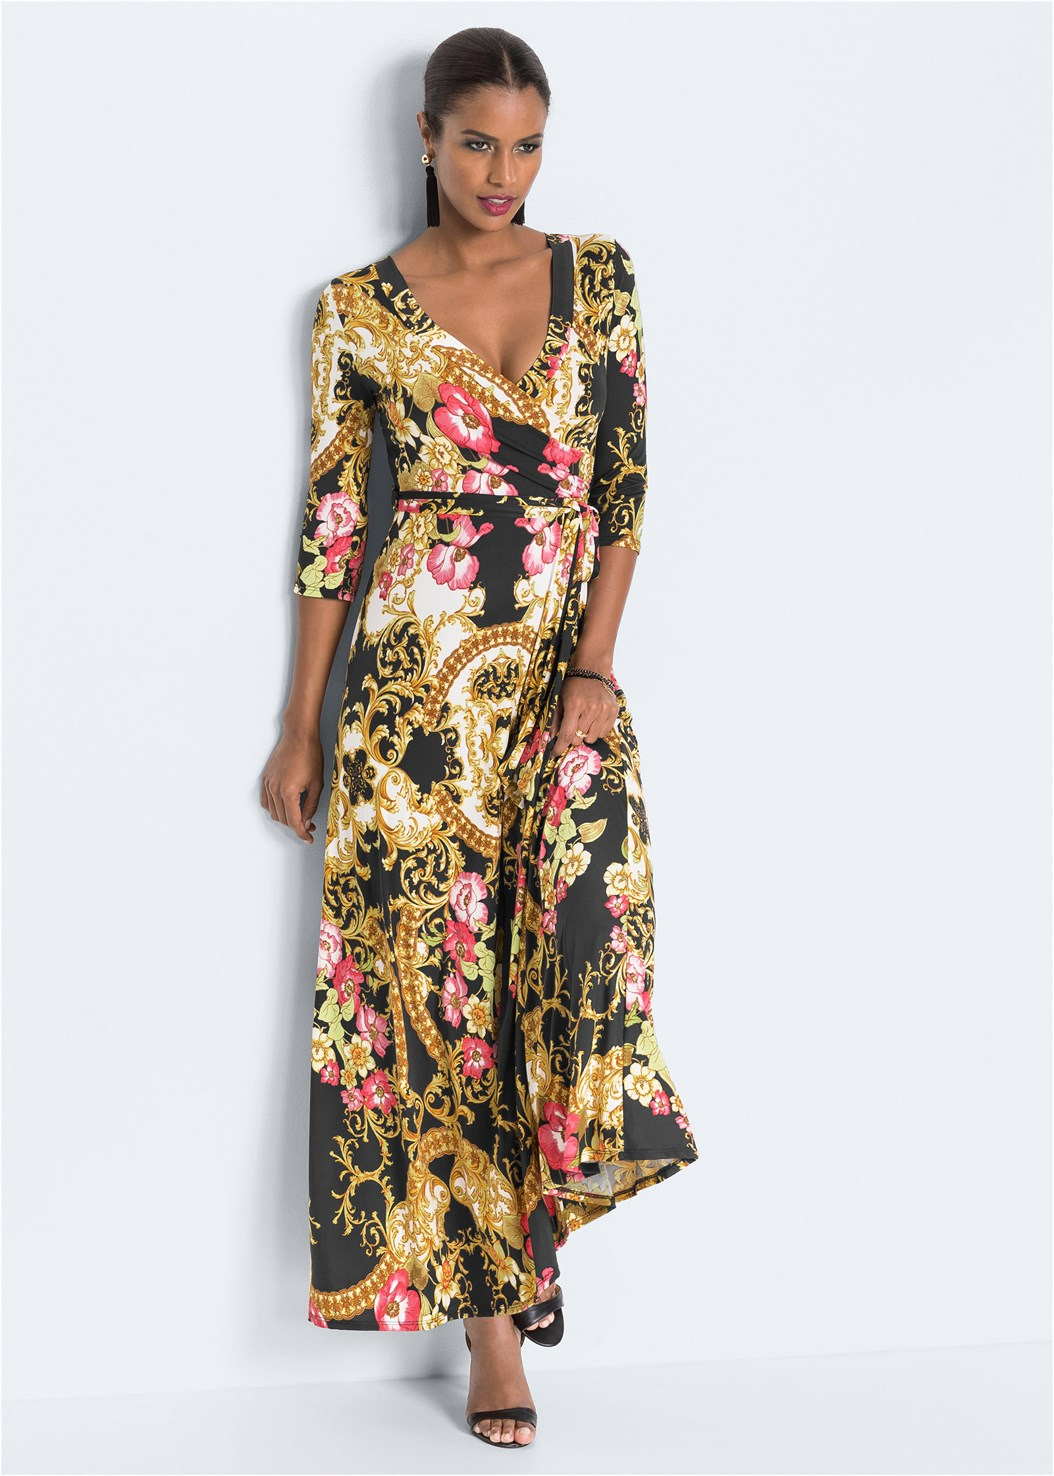 Mixed Print Wrap Dress,Confidence Seamless Dress,Beaded Hoop Earrings